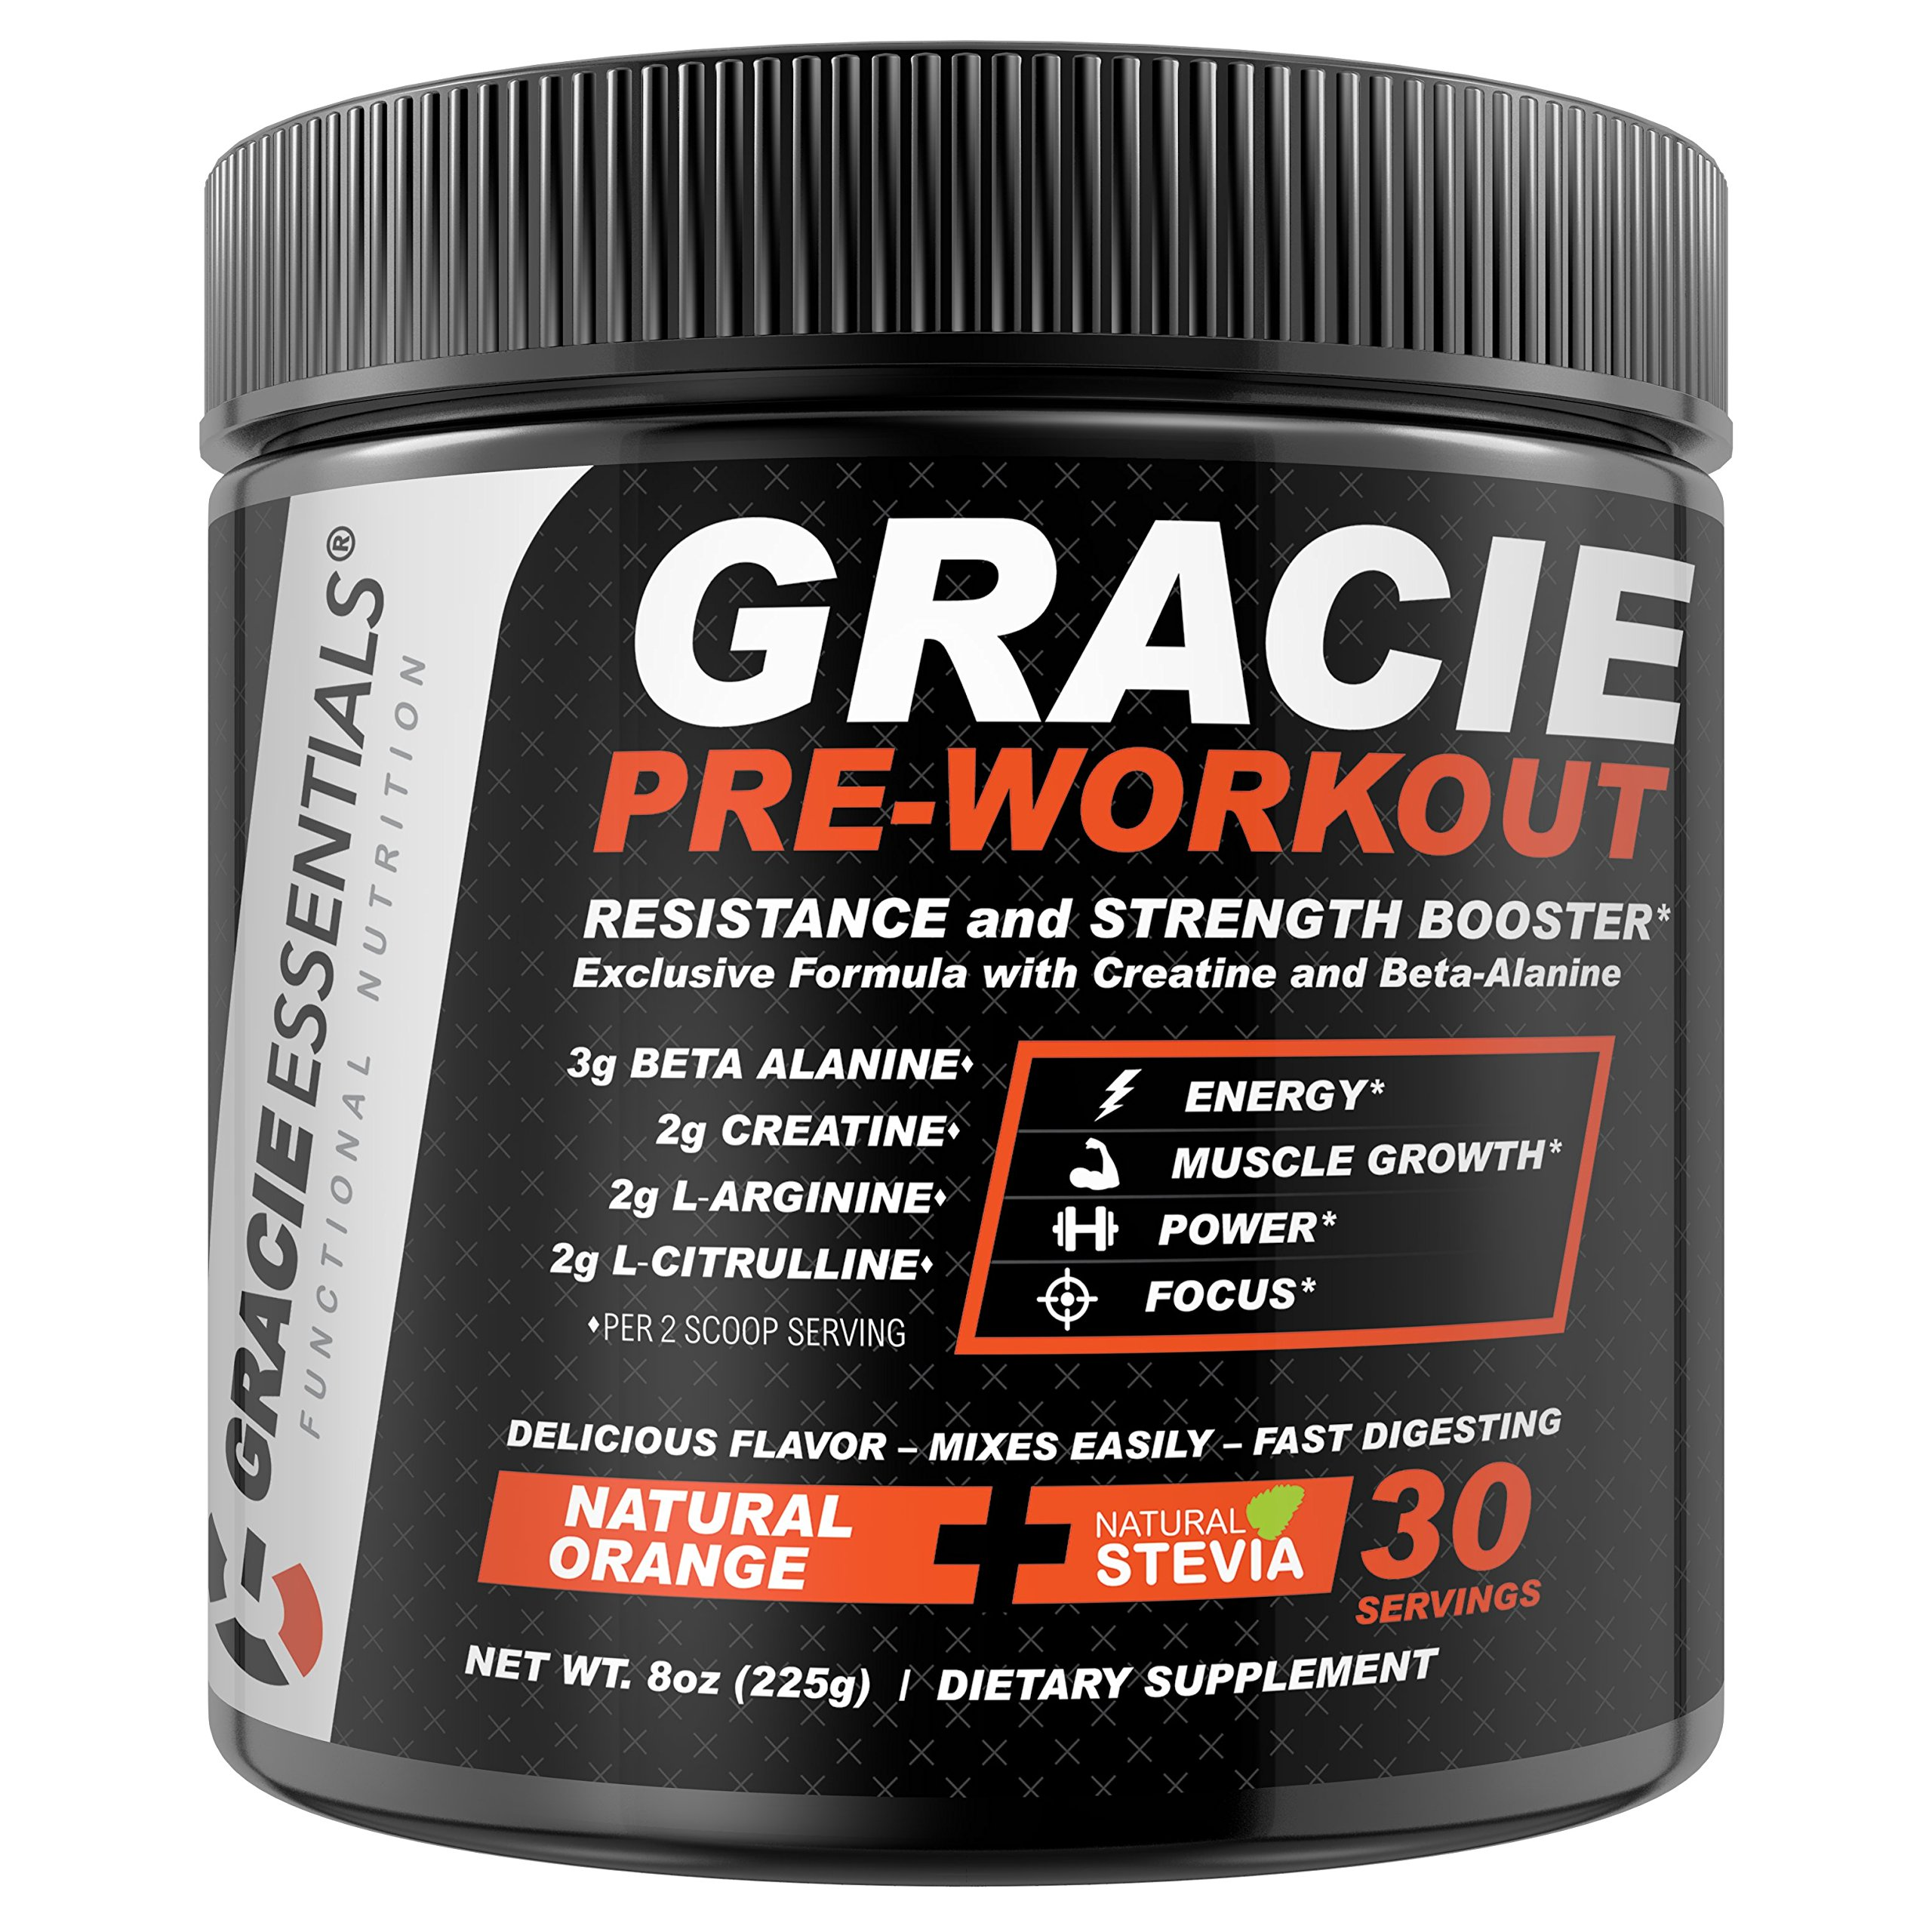 Gracie Essentials Pre Workout Powder Dietary Supplement 30 Servings for Men & Women with Natural Orange Flavor | Improve Energy & Efficiency, Promote Muscle Growth, Increase Power & Mental Clarity